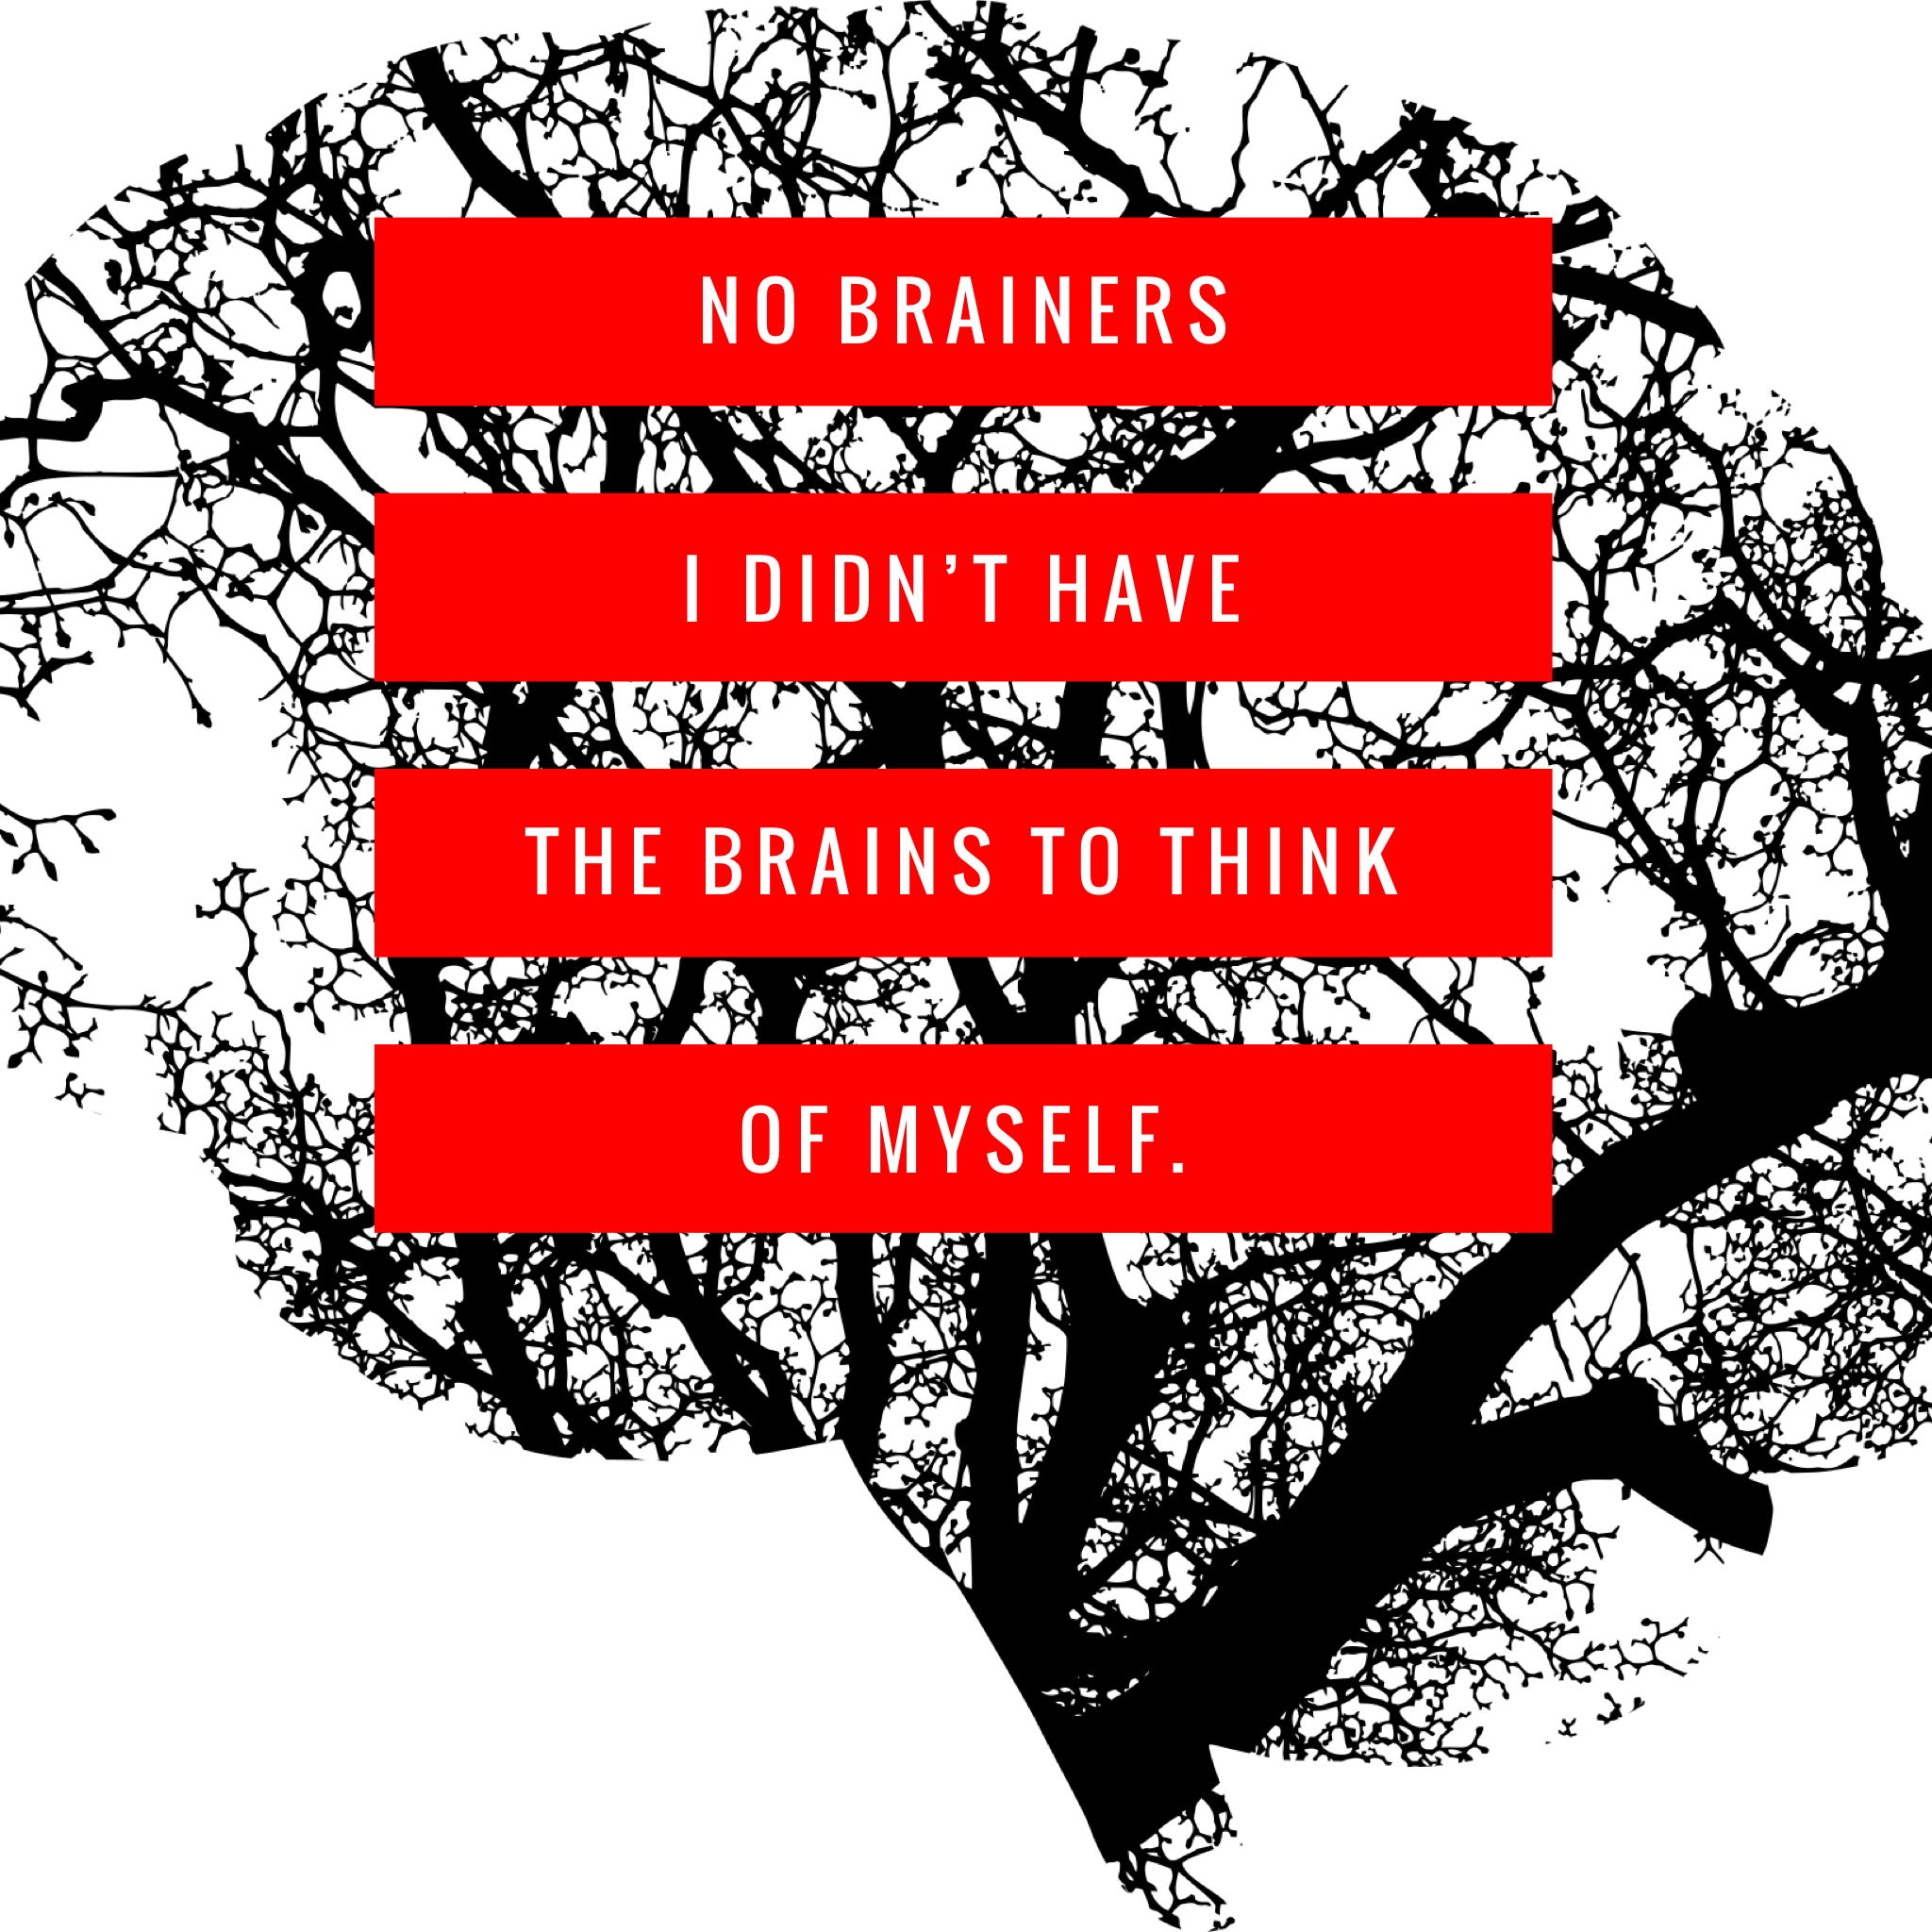 No Brainers I Didn